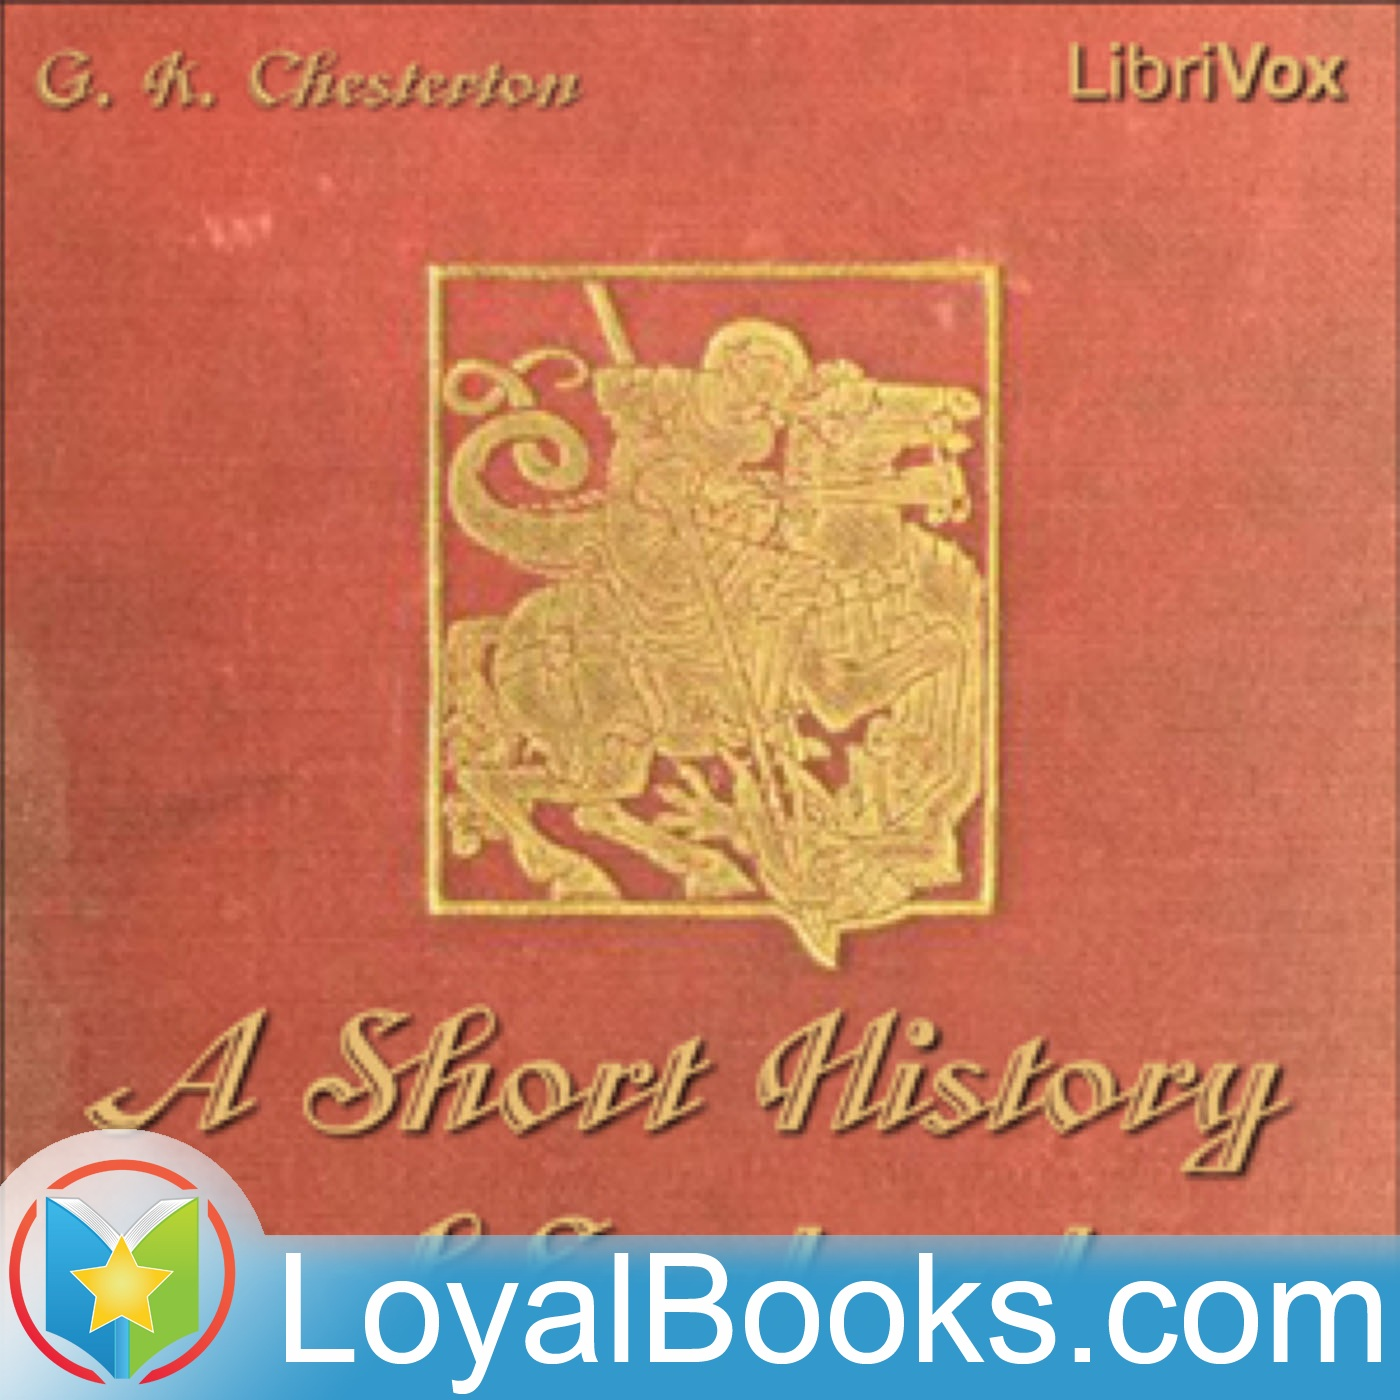 <![CDATA[A Short History of England by G. K. Chesterton]]>